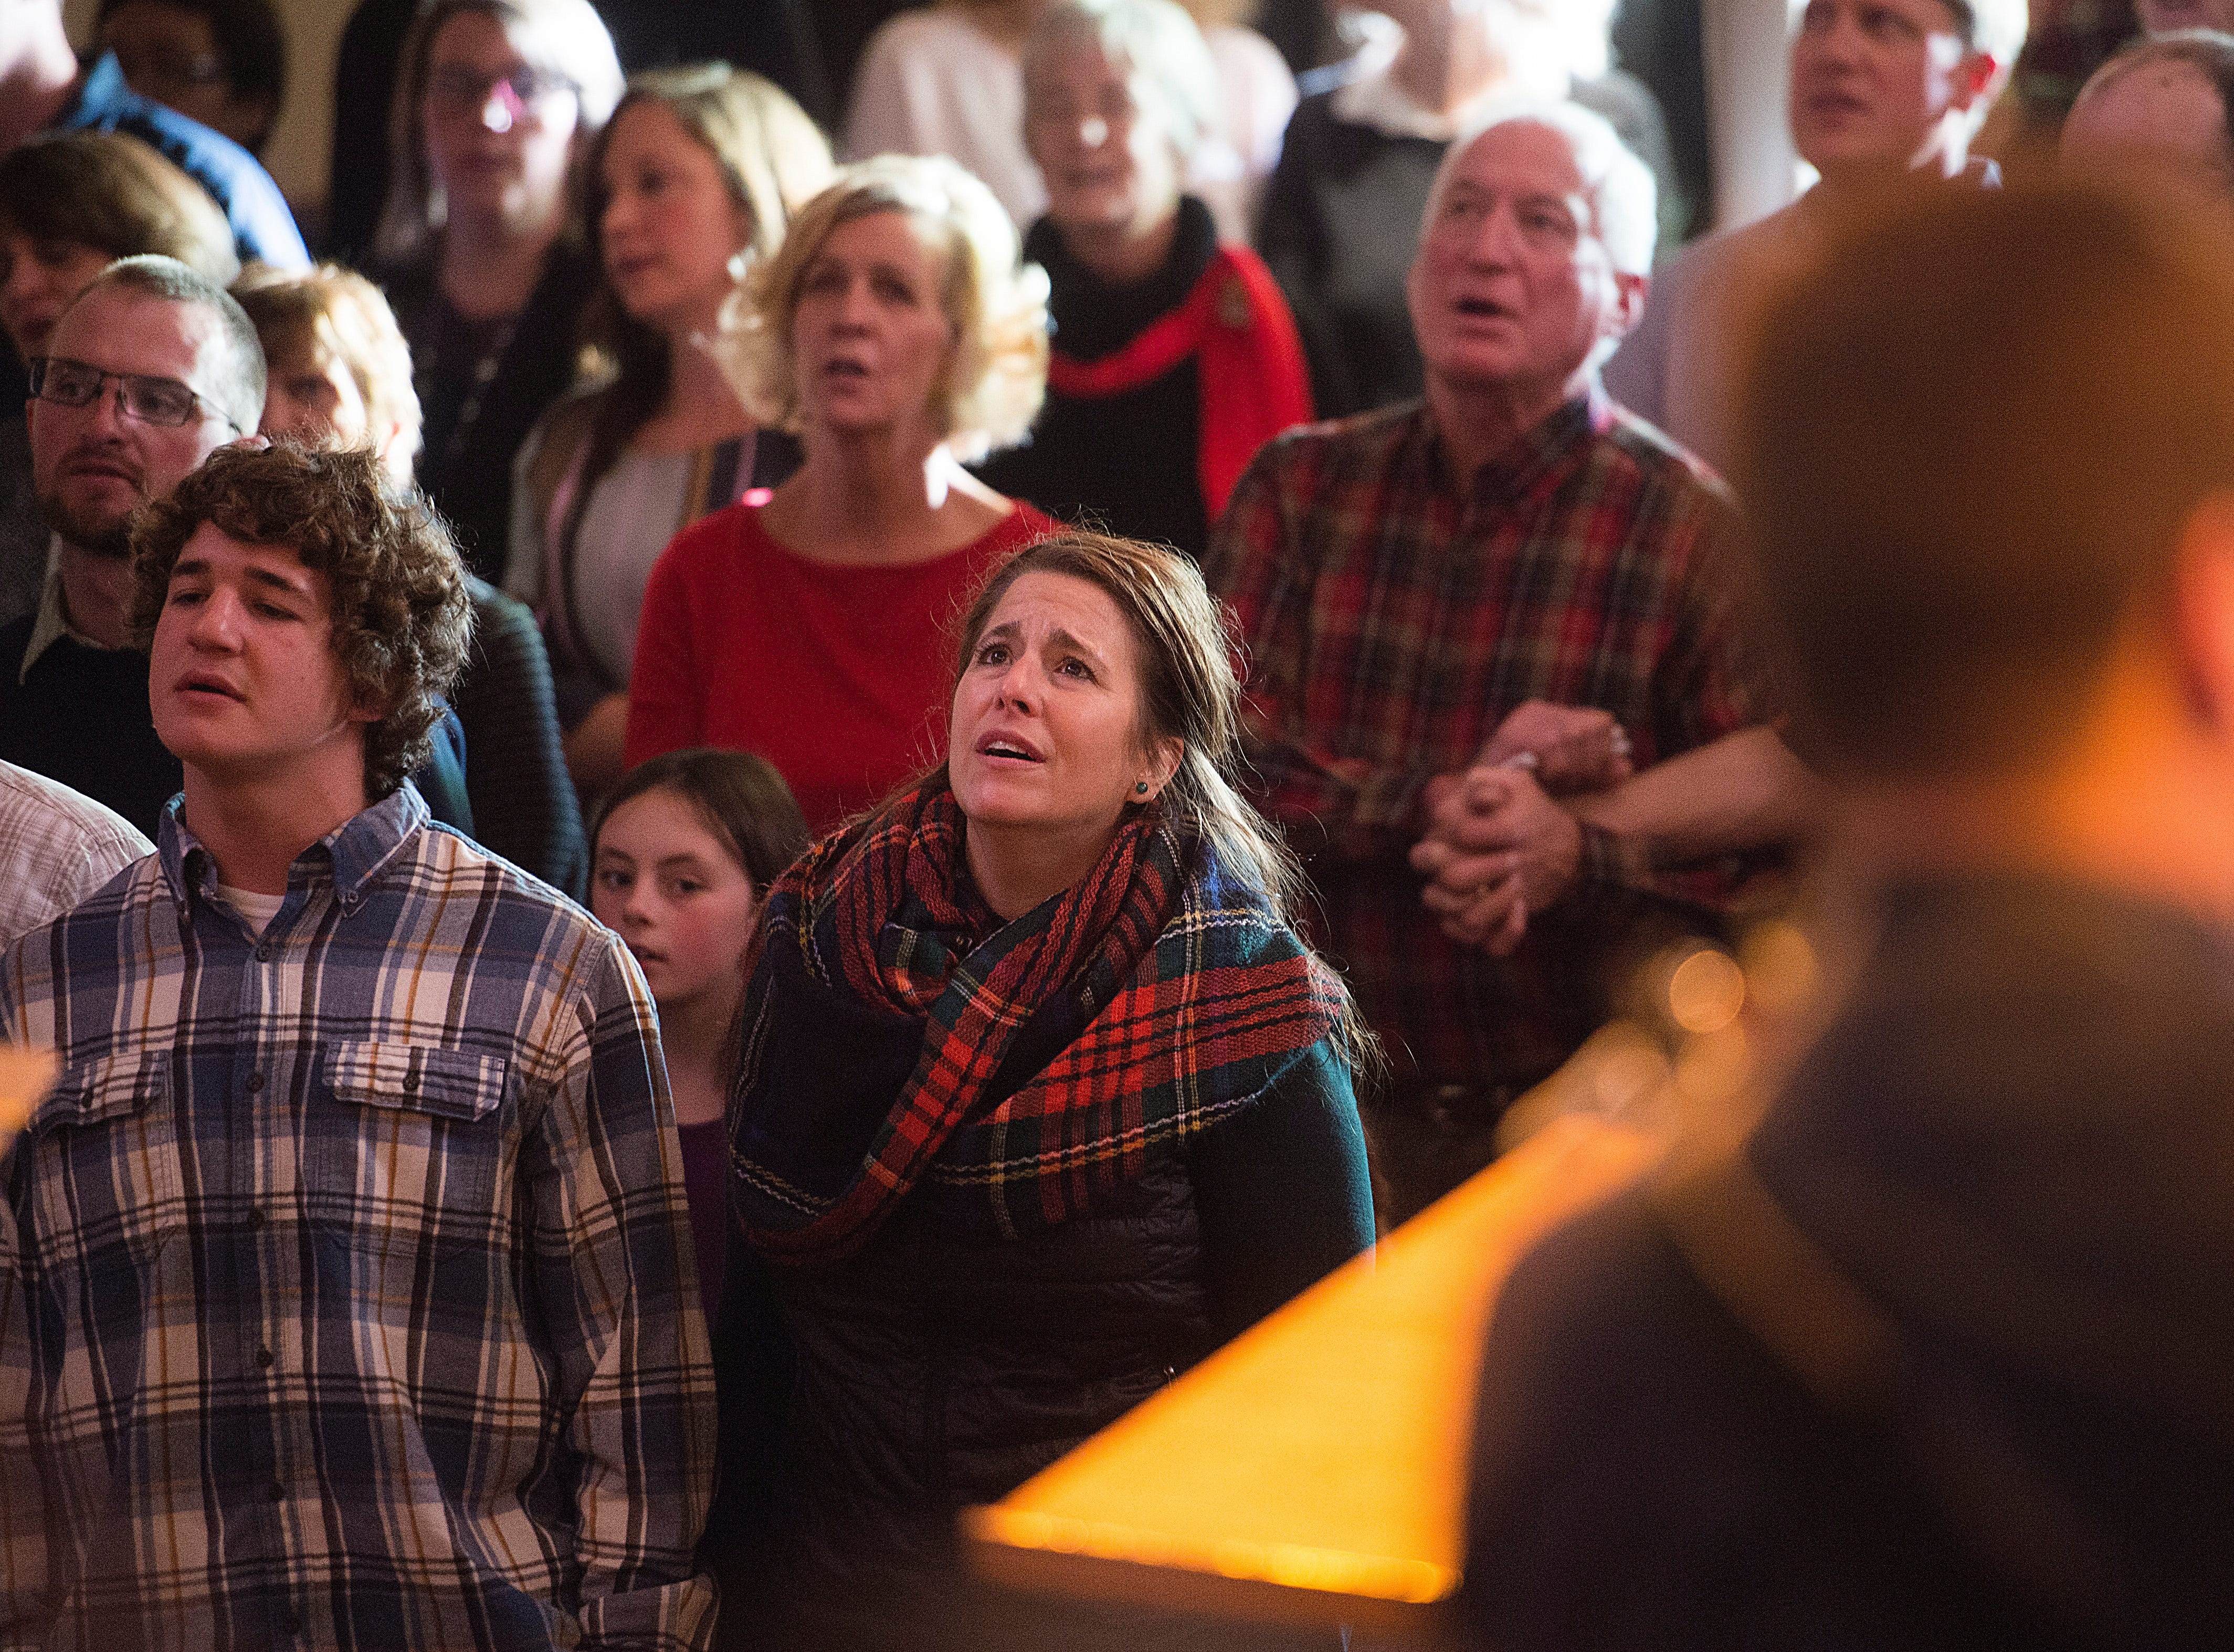 People sing along to Christmas hymns during a candlelight service at Mountain View Community Church on Monday, December 24, 2018.